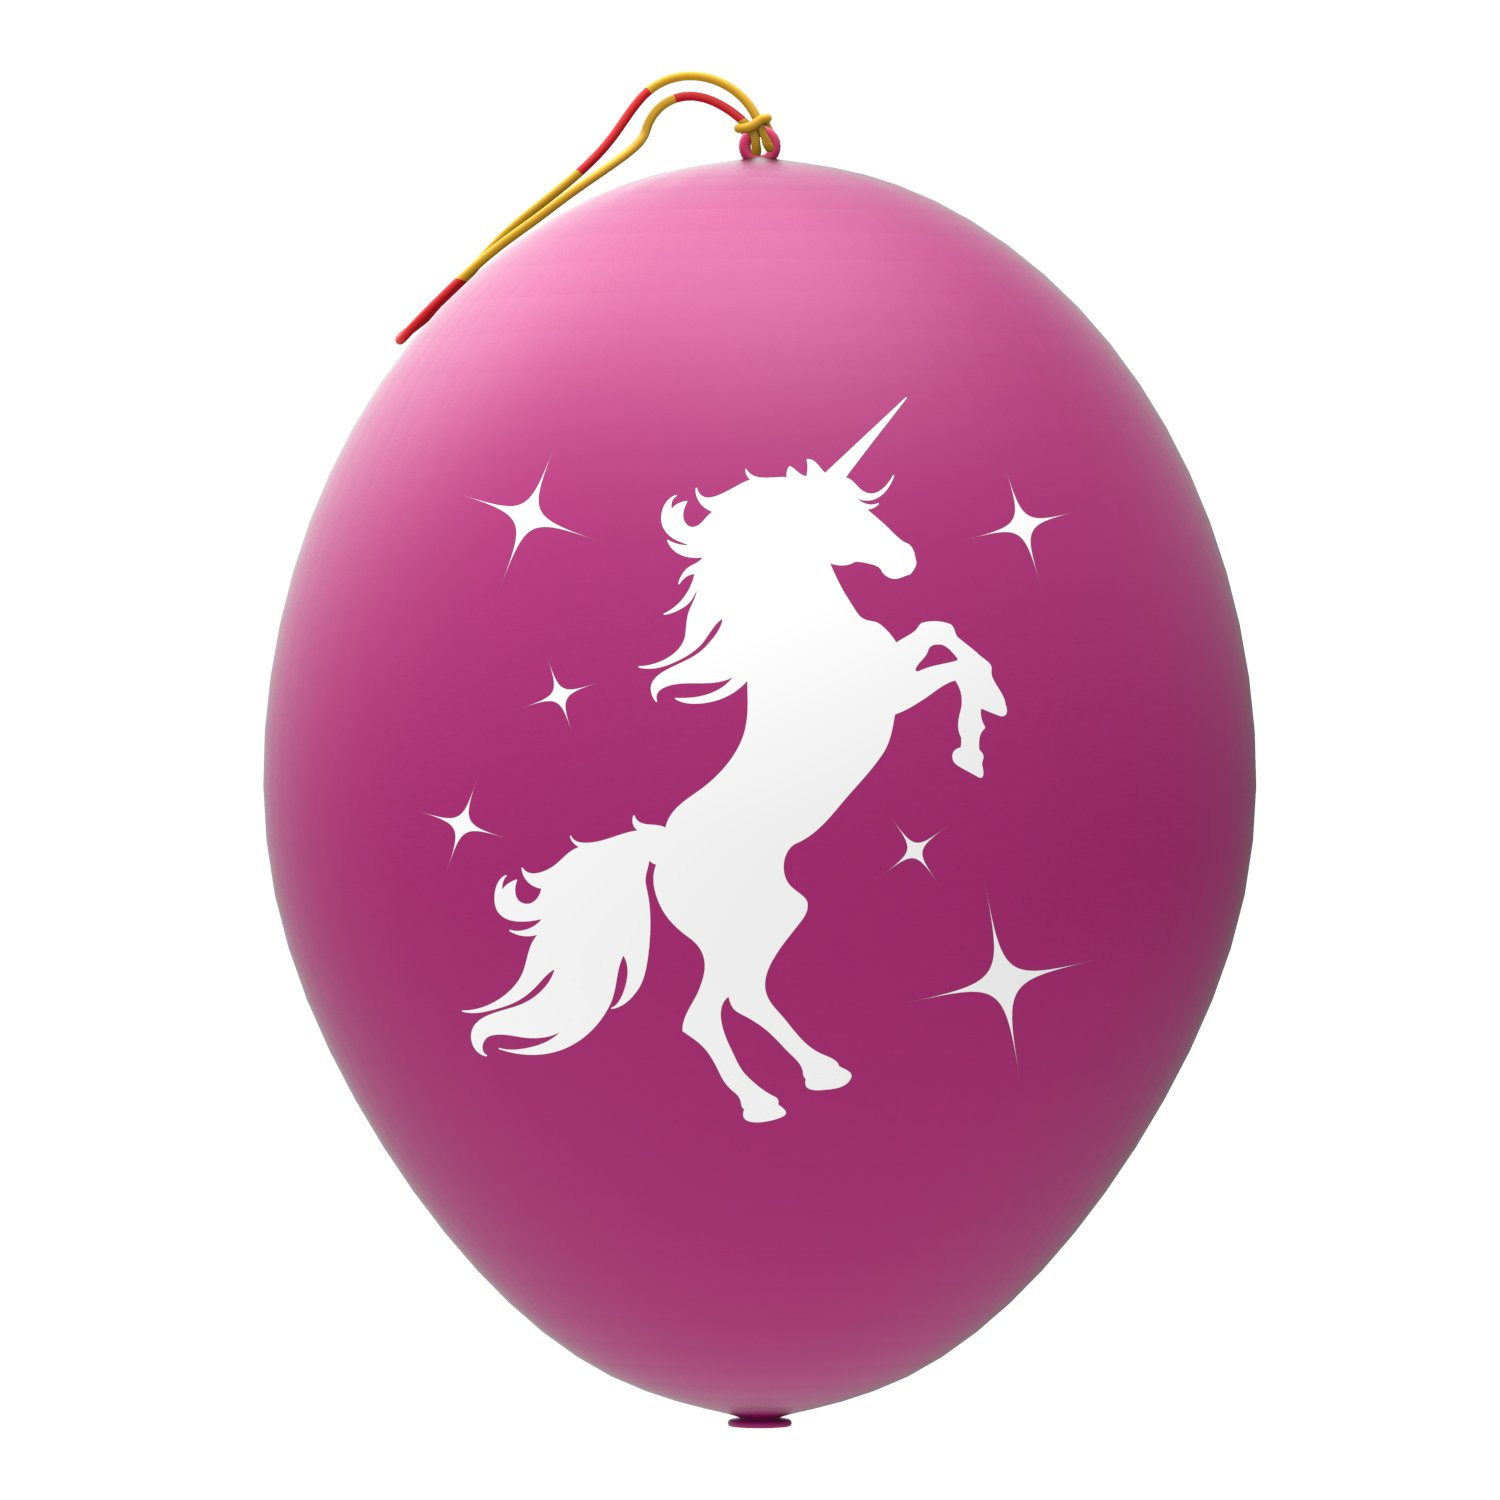 John & Judy 24 Purple Unicorn Punch Balloons - Best for Birthday Gift Bags, Kids Games, Princess Parties and Unicorn Party Supplies - Extra Large, Eco Friendly Natural Latex Punch Balls for Girls